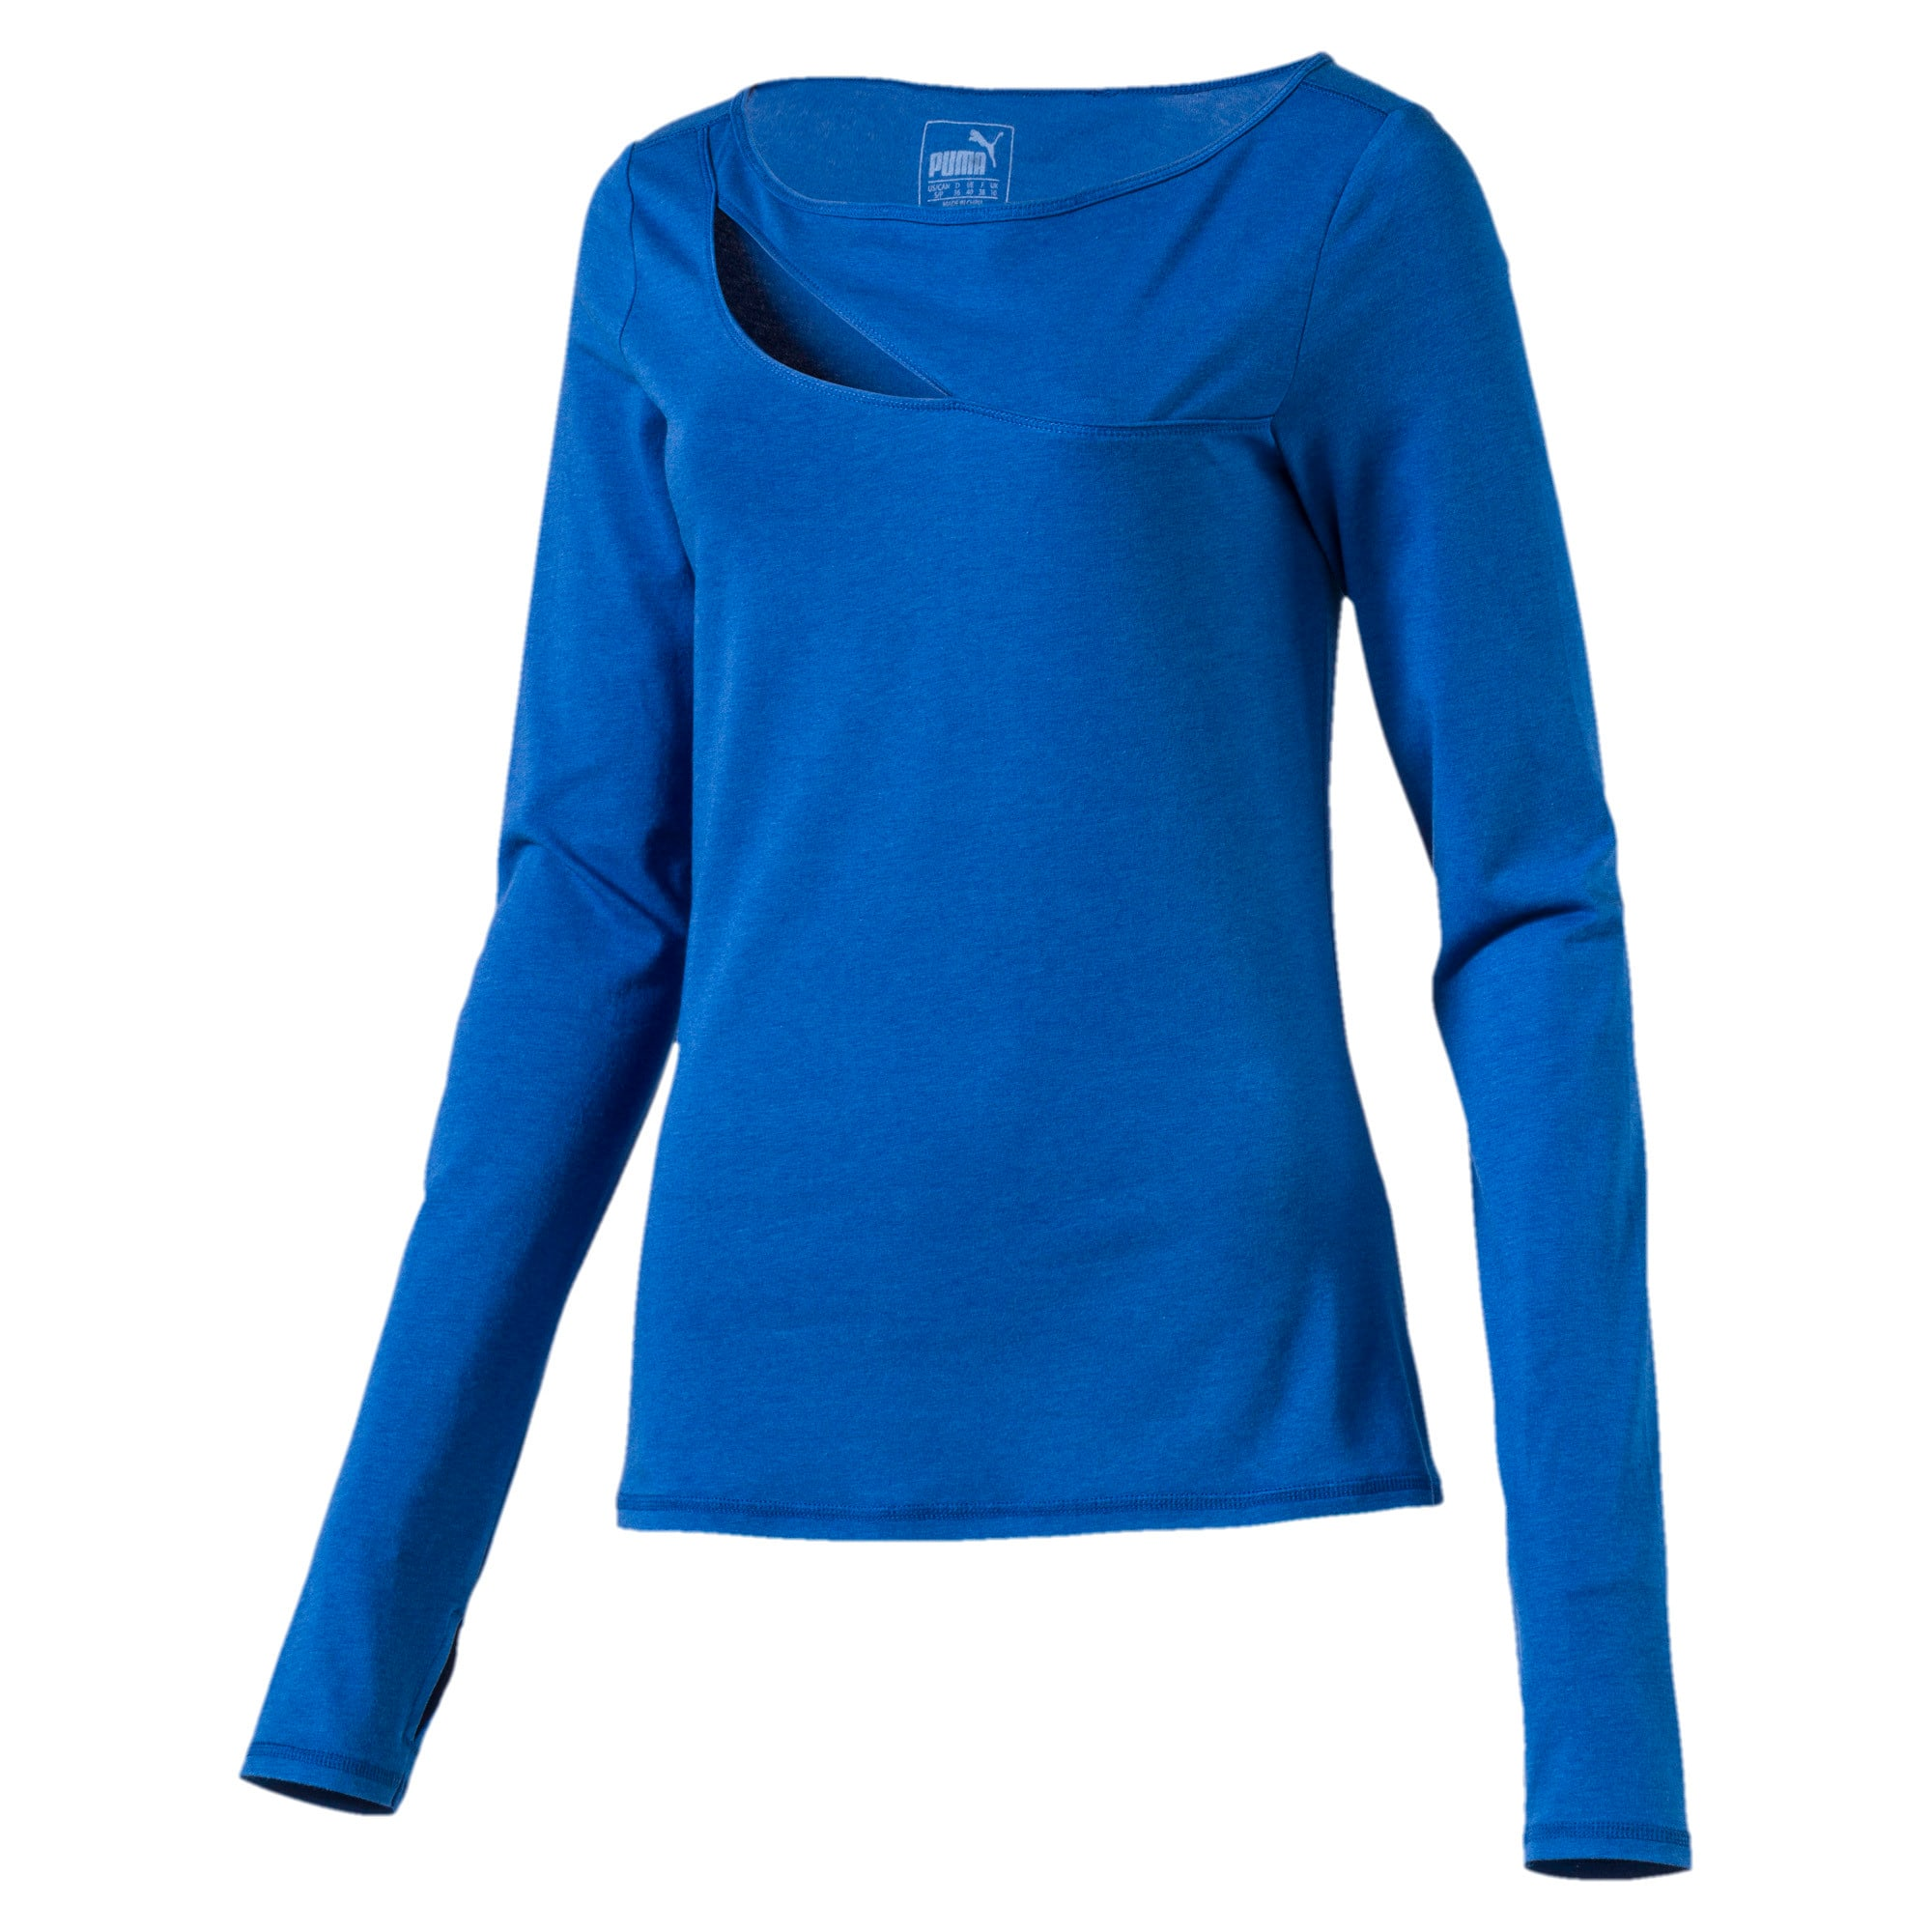 Thumbnail 3 of Dancy Airy L S Cover-up, TRUE BLUE Heather, medium-IND